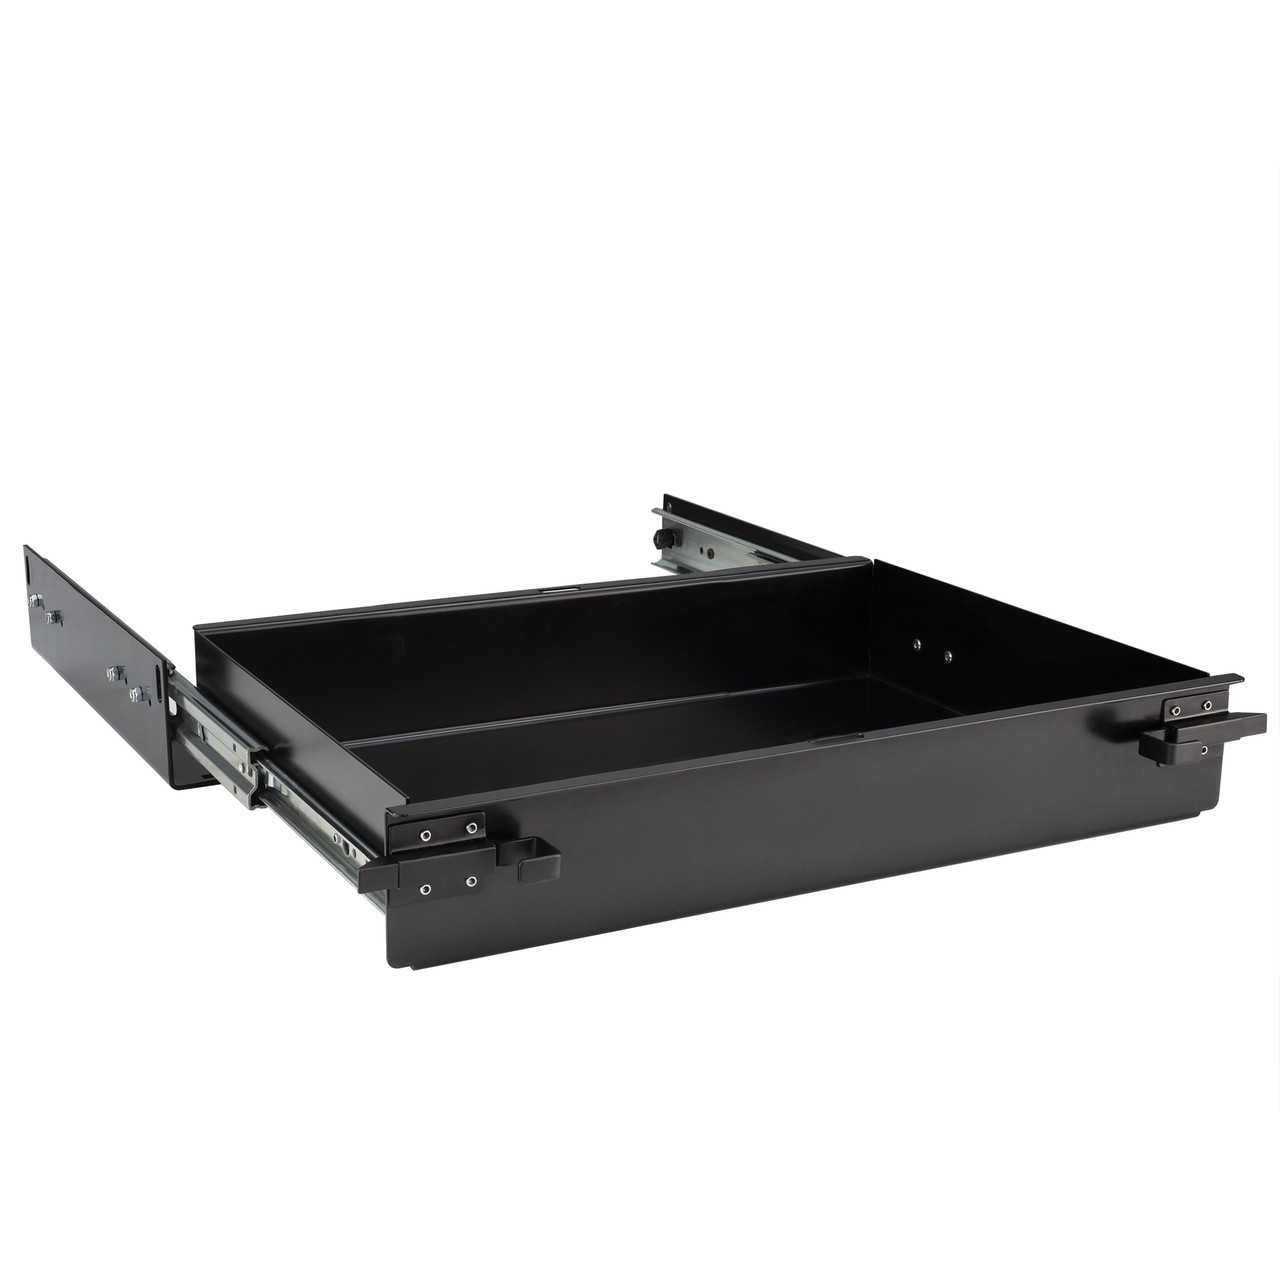 RV Generator Slide Out Tray Can be Used for Yamaha 2000